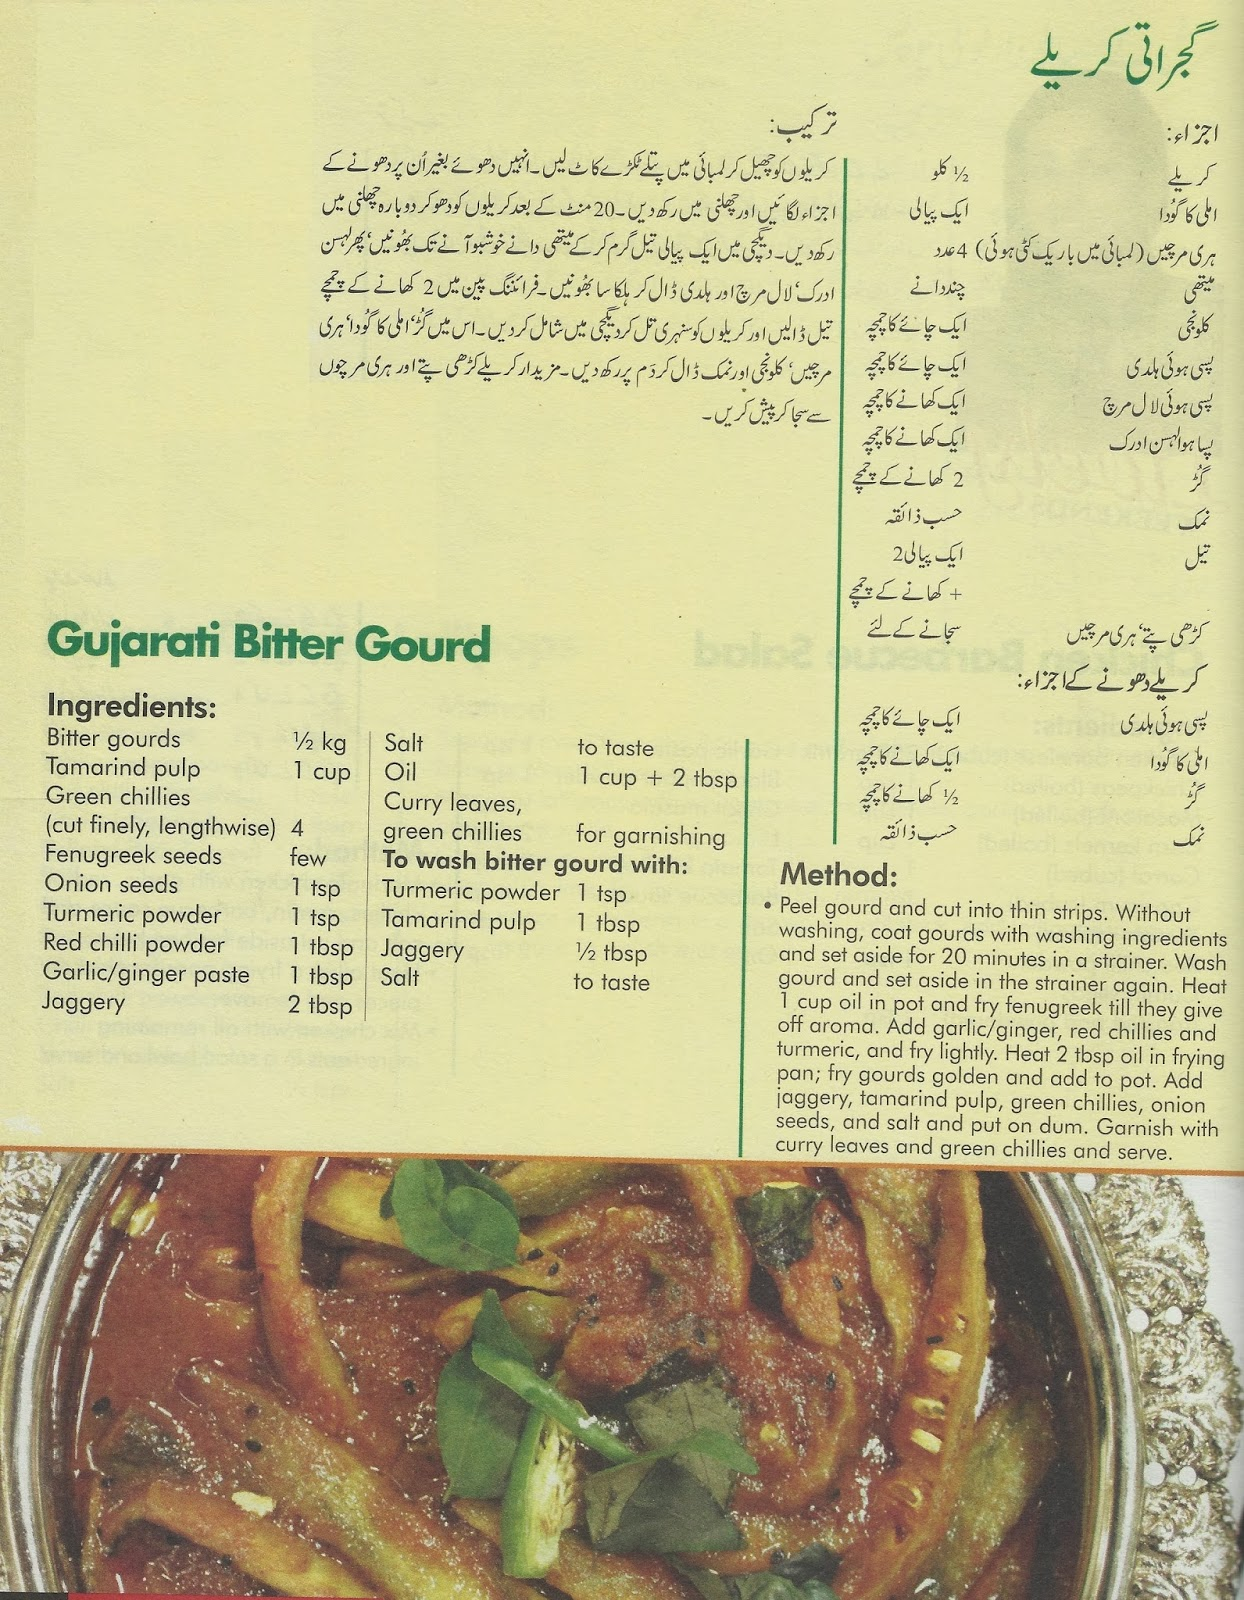 Karela juice recipe in urdu clomid cycle 1 success rate recipes juice recipes based onpdf urdu koka shastra pdf book full download free manuals and ebooks about the complete book of juicing pdf download forumfinder Gallery